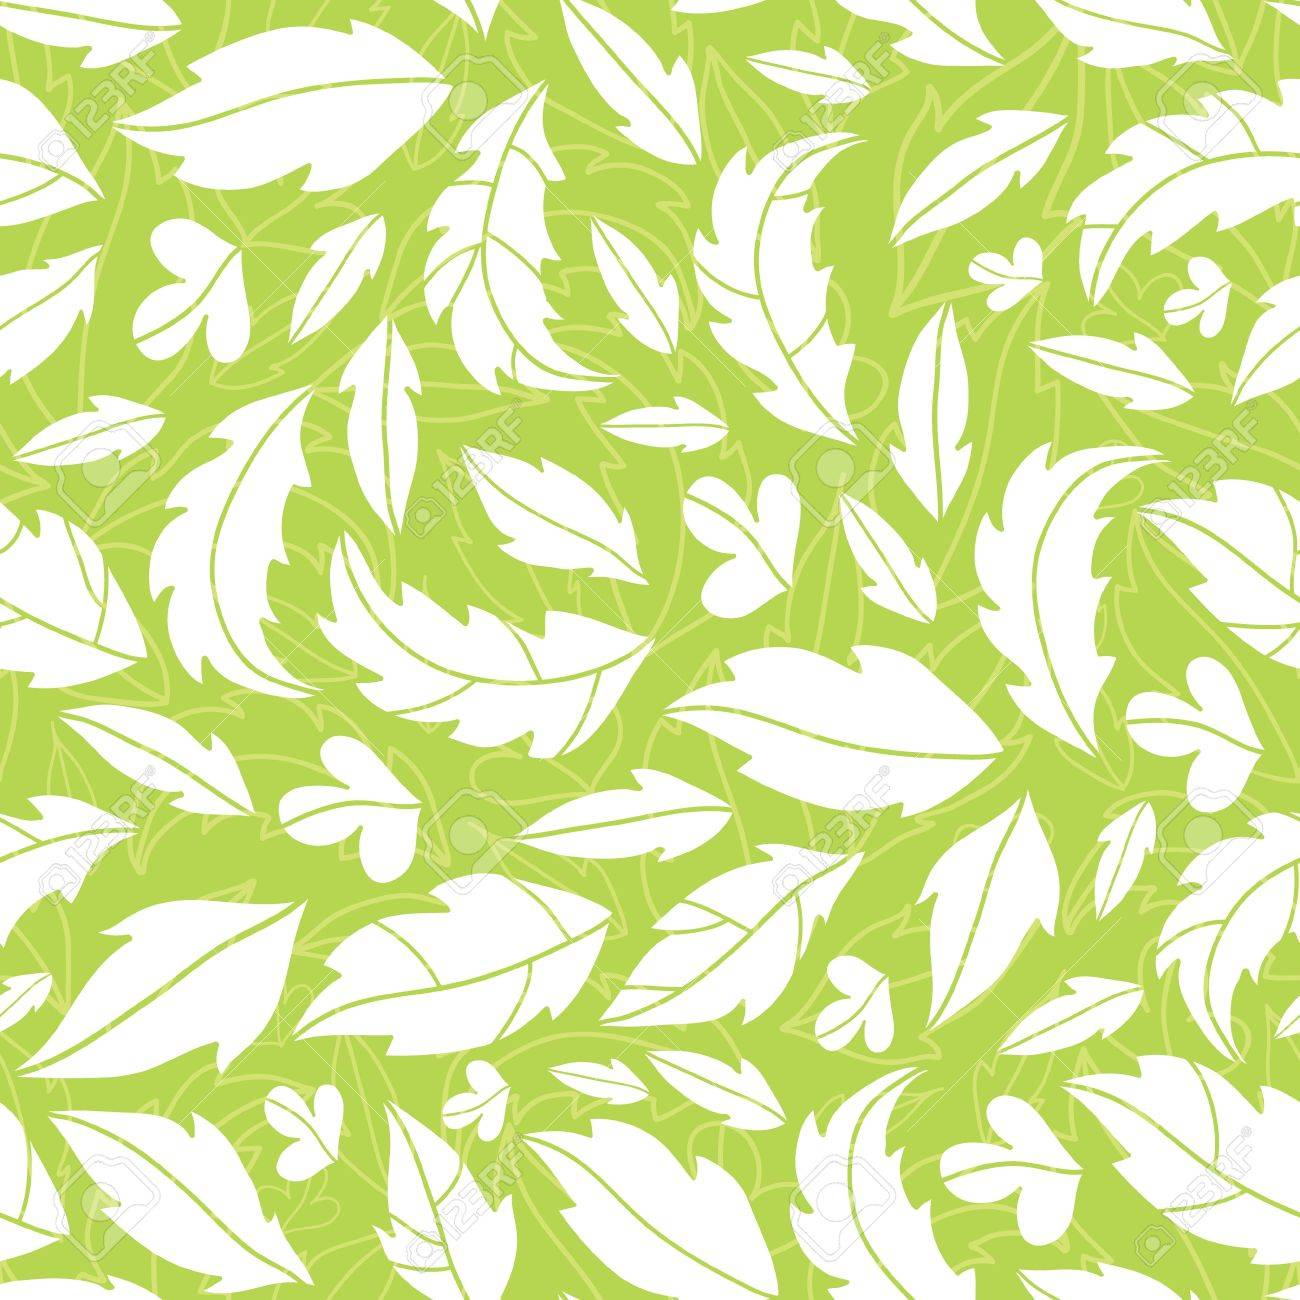 White On Green Leaves Silhouettes Seamless Pattern Background Stock